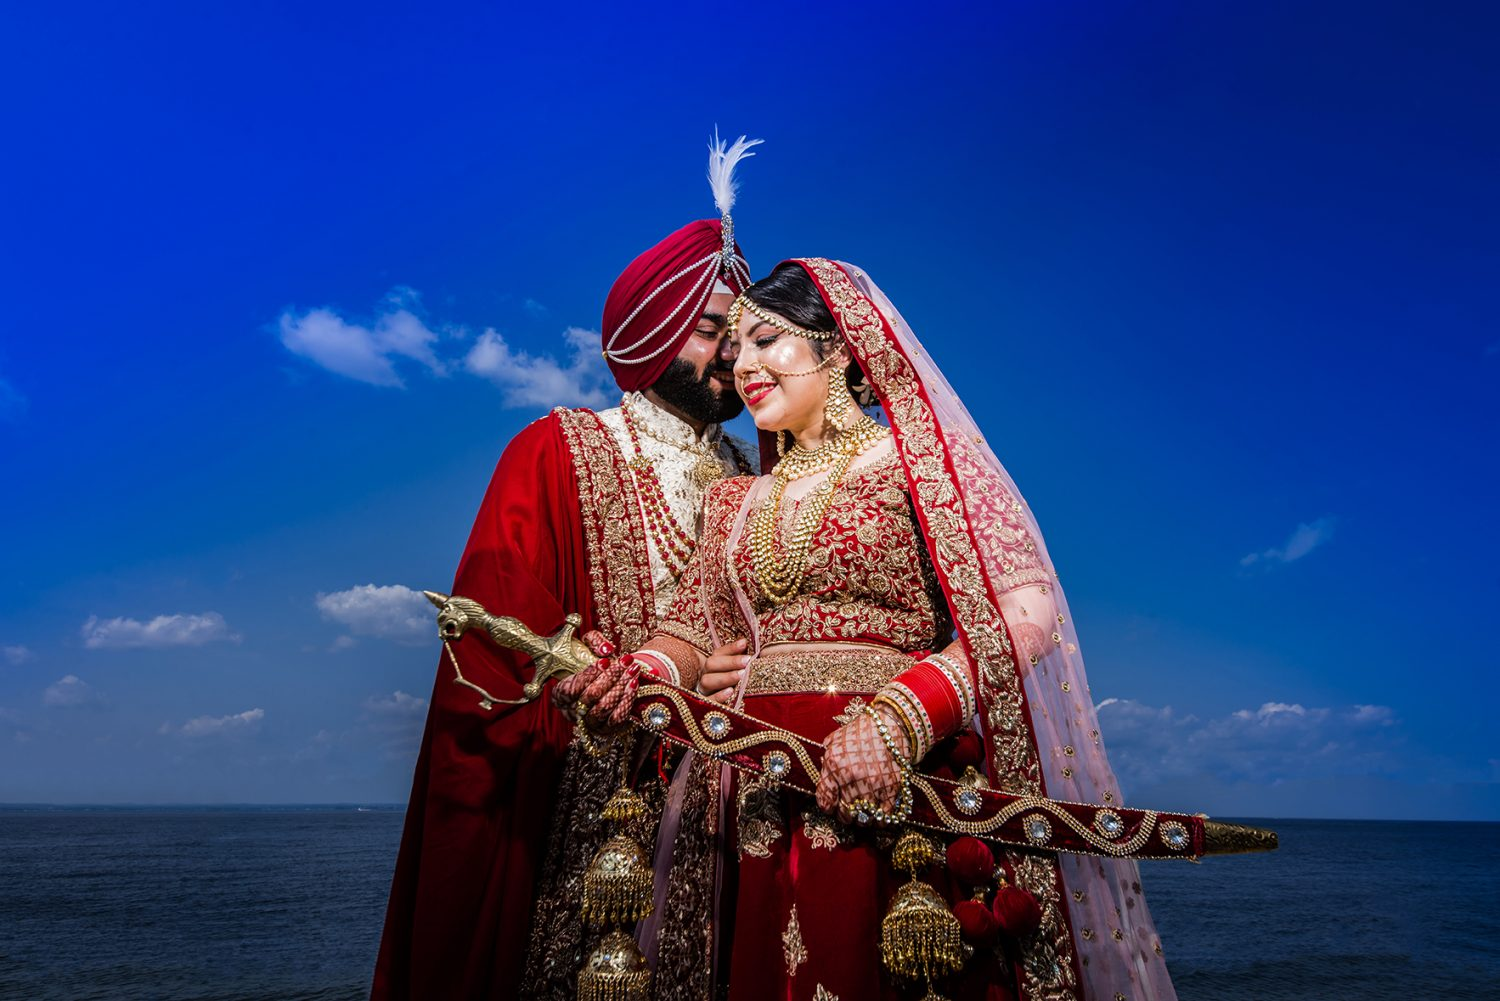 south_asian_wedding_photography_dhoom_studio_new_york67-1-e1573080066175 SOUTH ASIAN WEDDINGS